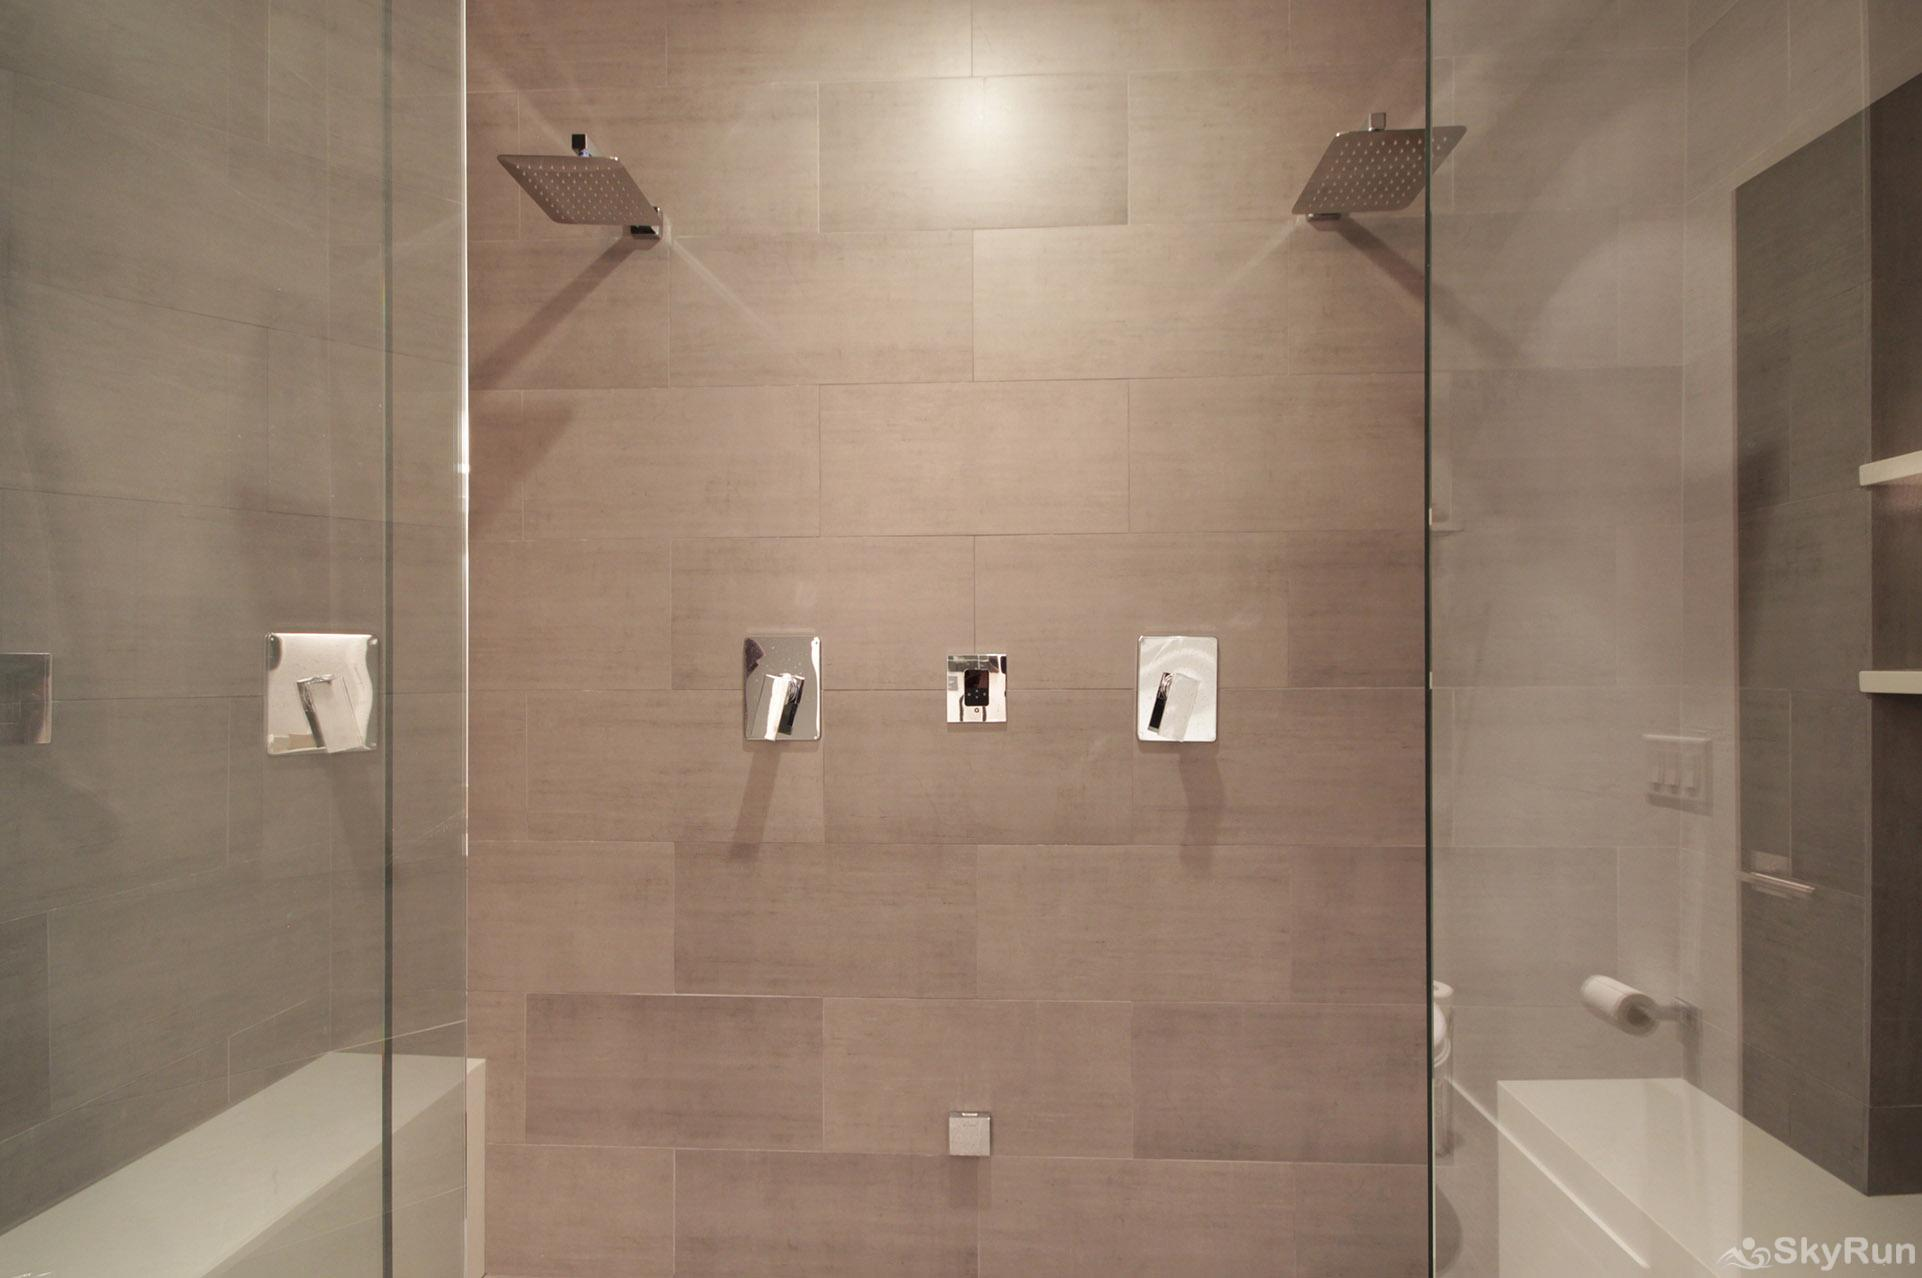 The Moose Chalet Enjoy a steaming hot shower in this luxurious modern shower